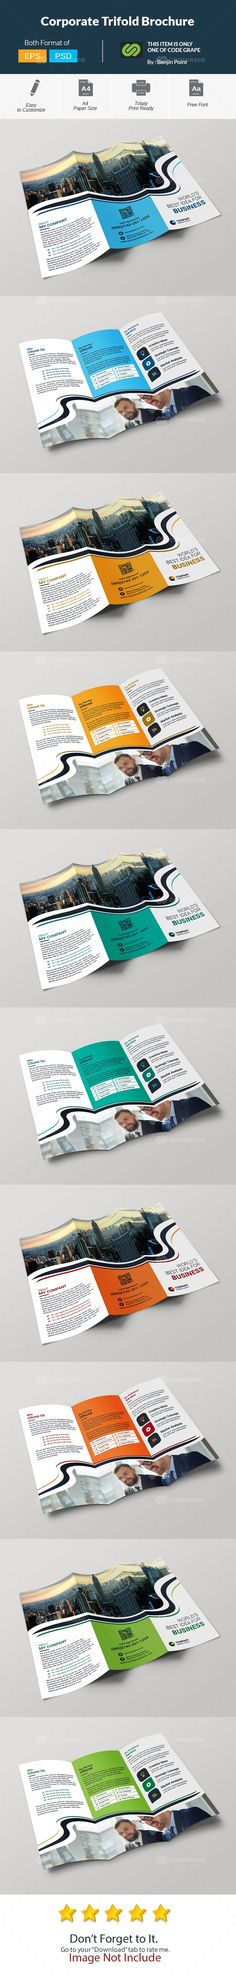 Corporate Trifold Brochure on @codegrape. More Info: https://www.codegrape.com/item/corporate-trifold-brochure/13518